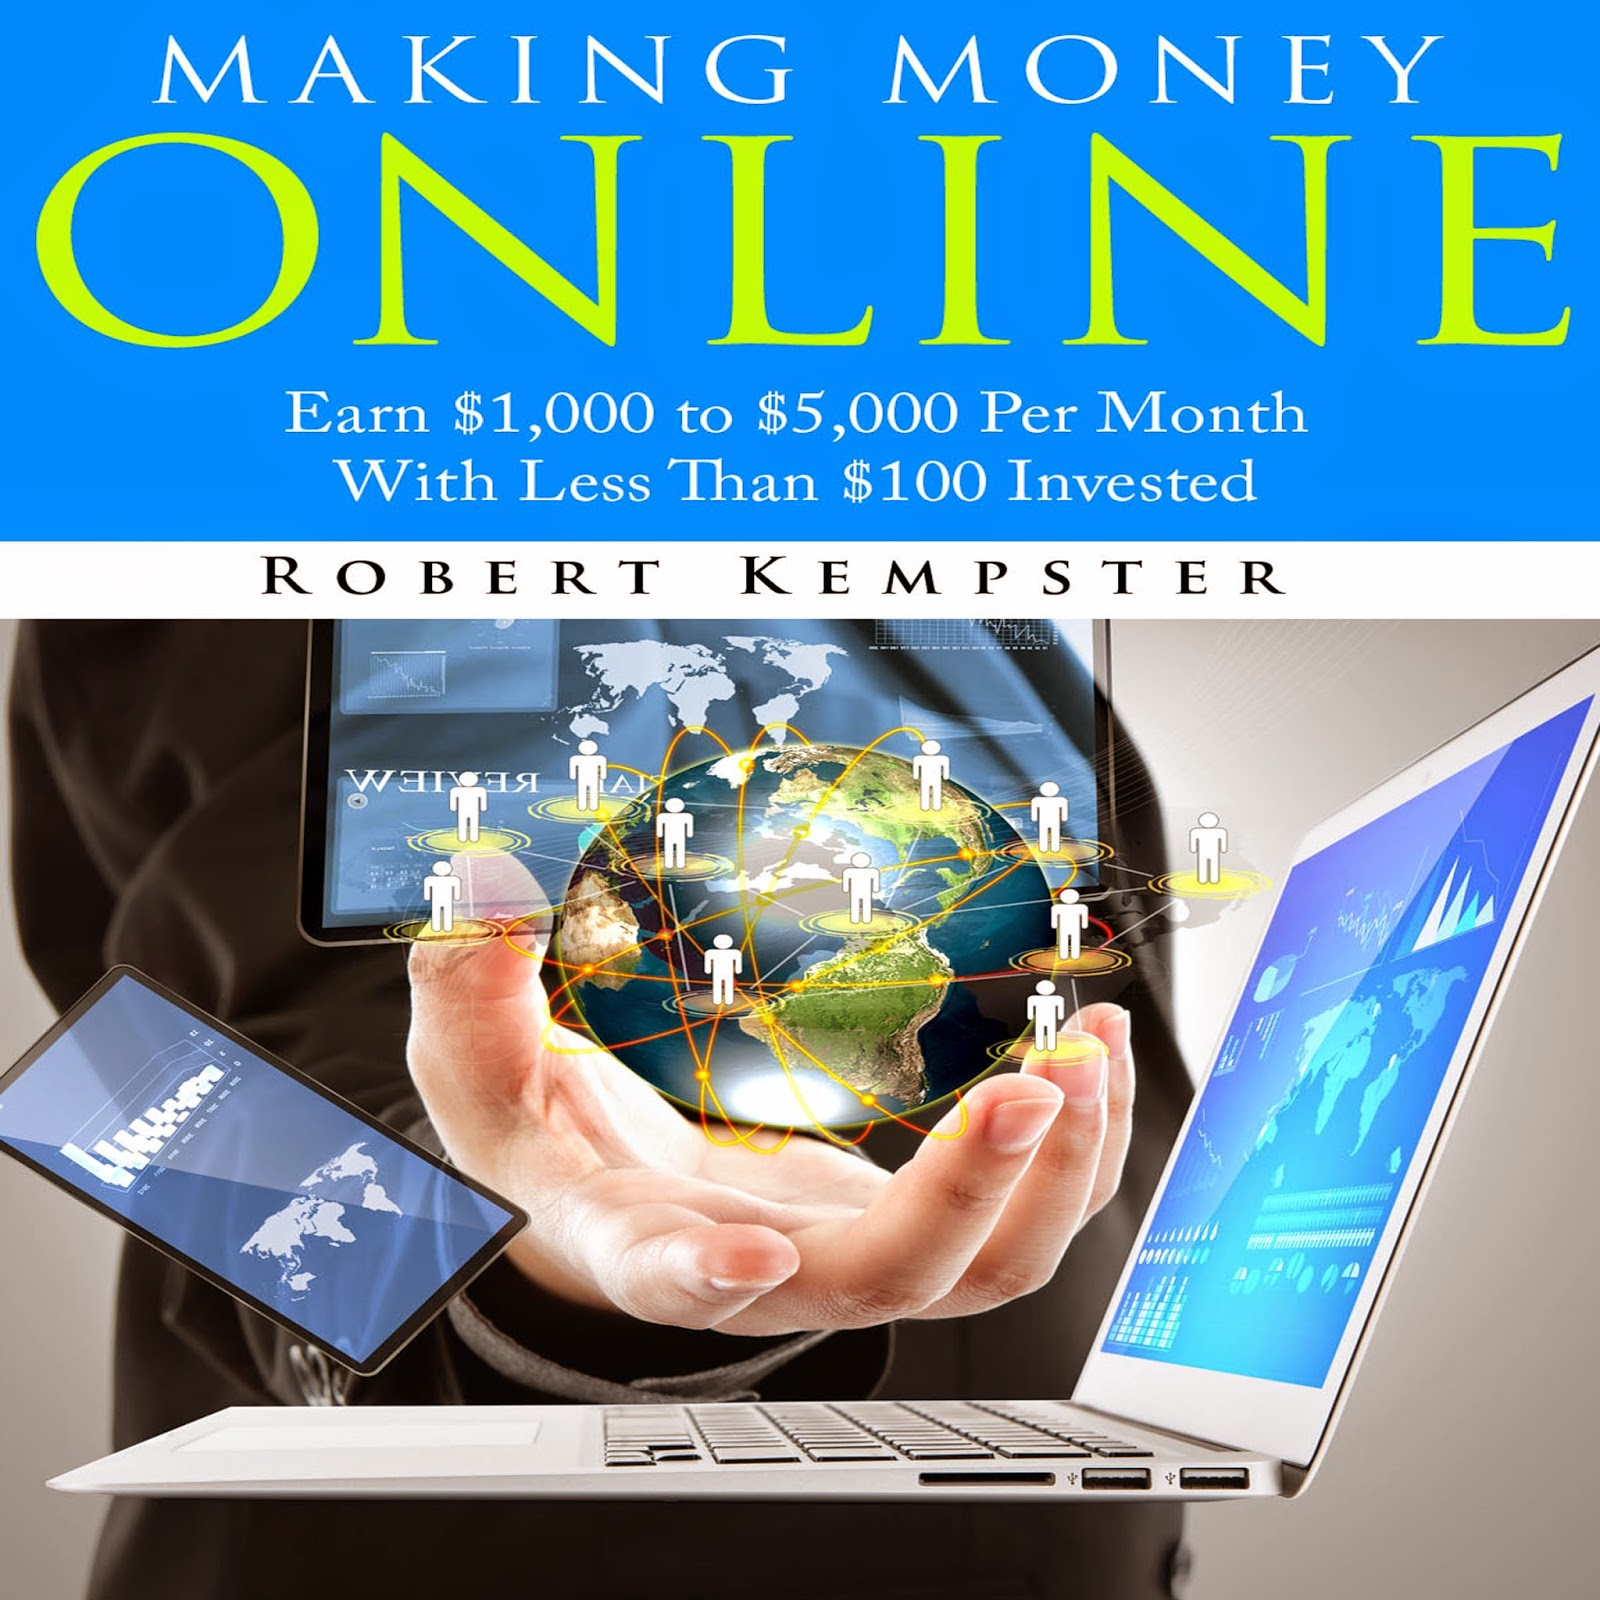 making money online, robert kempster